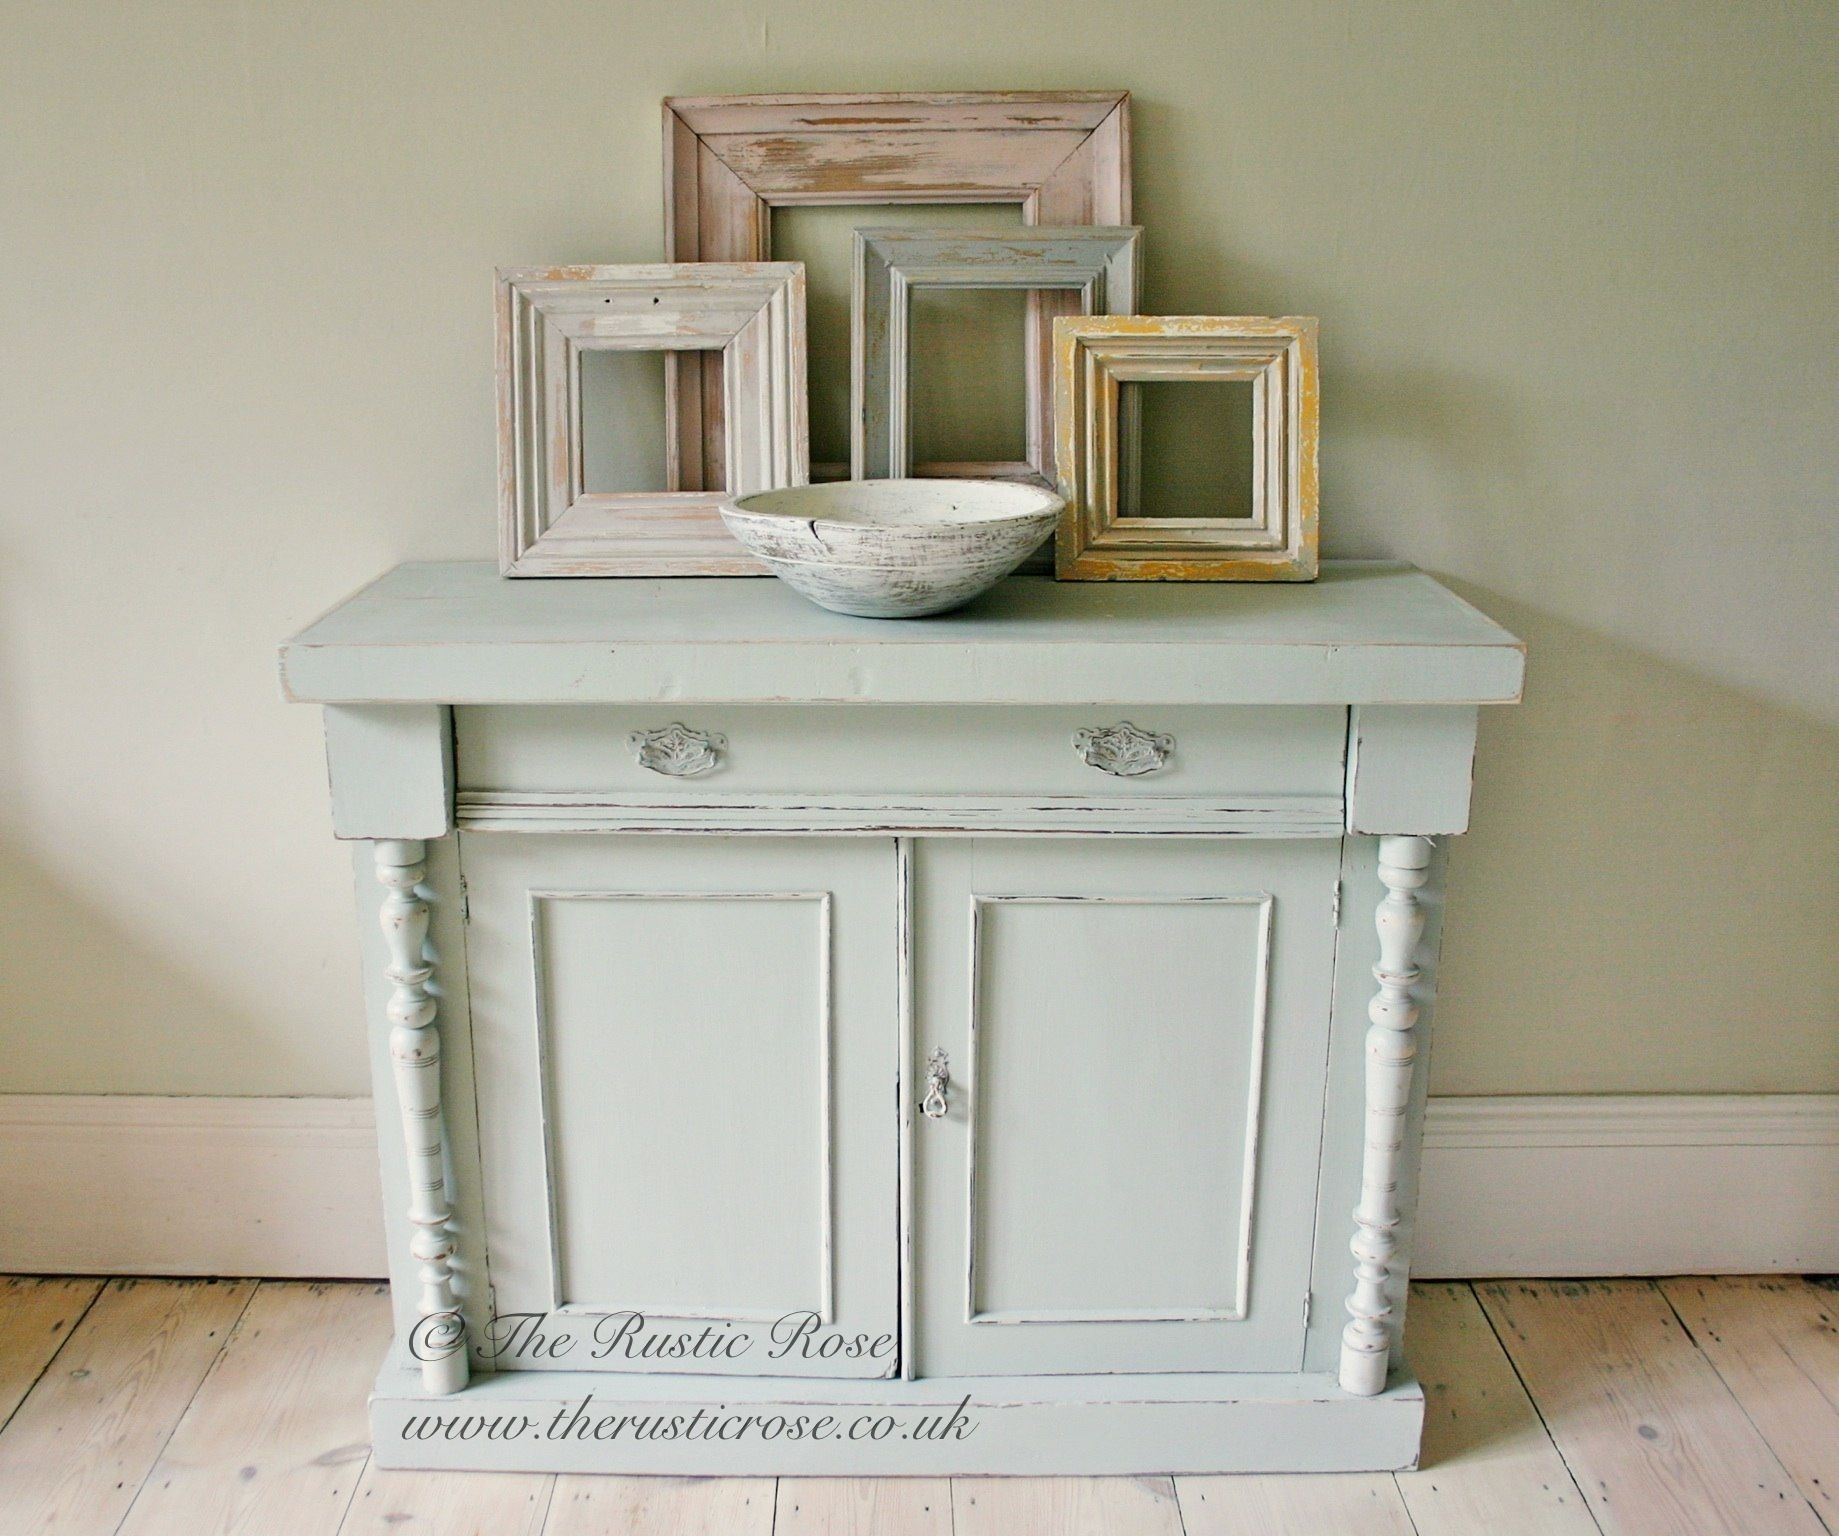 This lovely chiffonier has been painted in